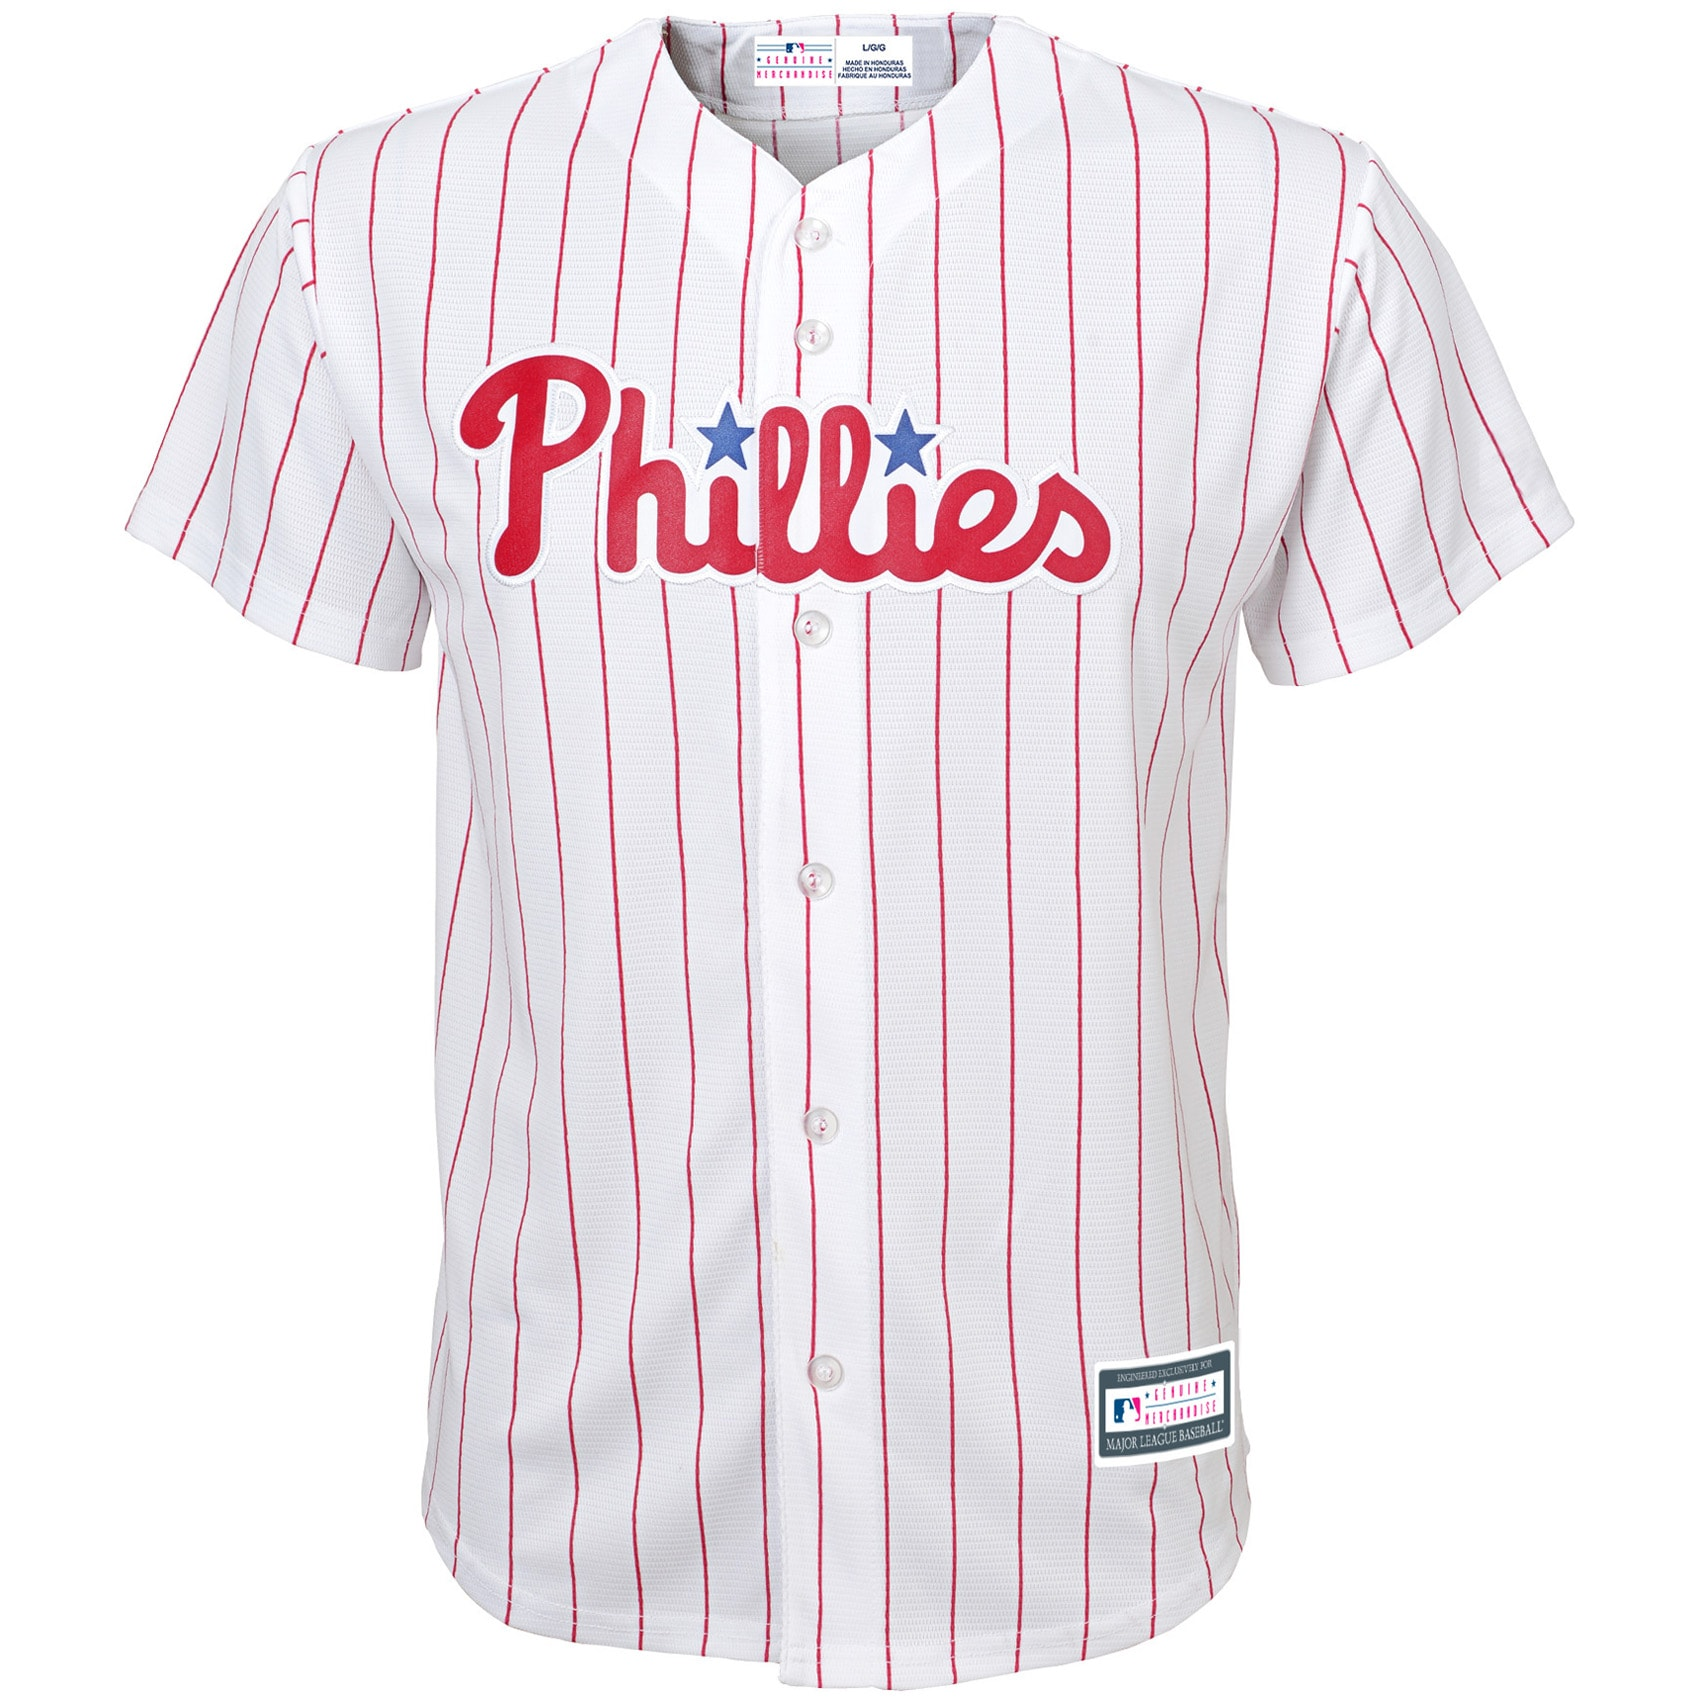 Philadelphia Phillies Youth Home Replica Blank Team Jersey - White